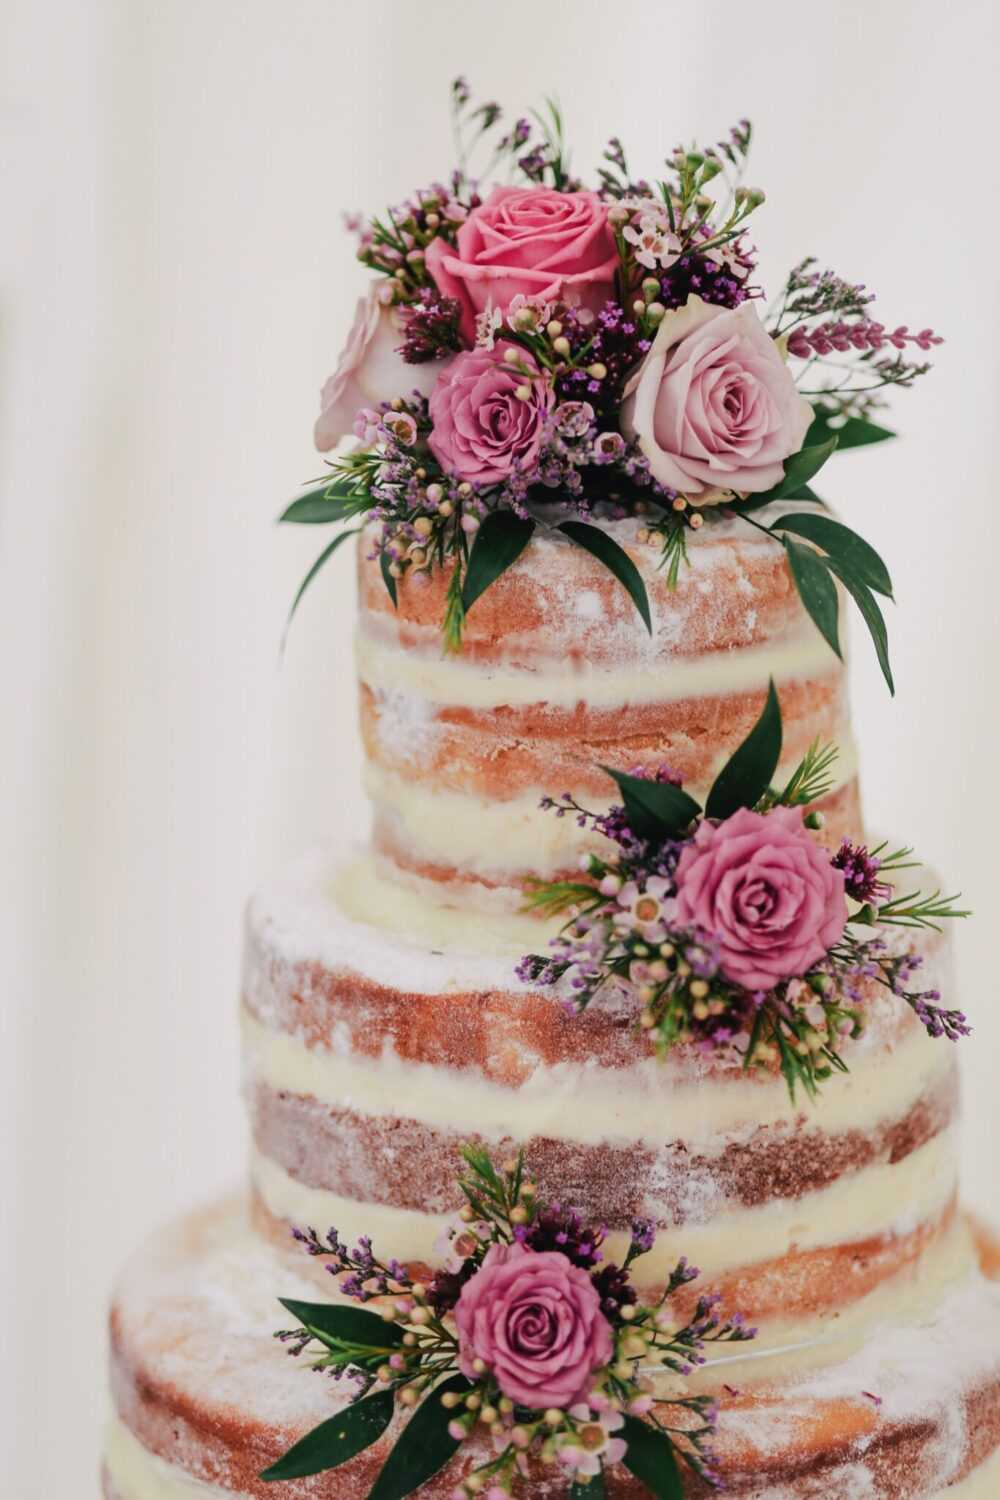 Layered cake decorated with edible flowers for cake.